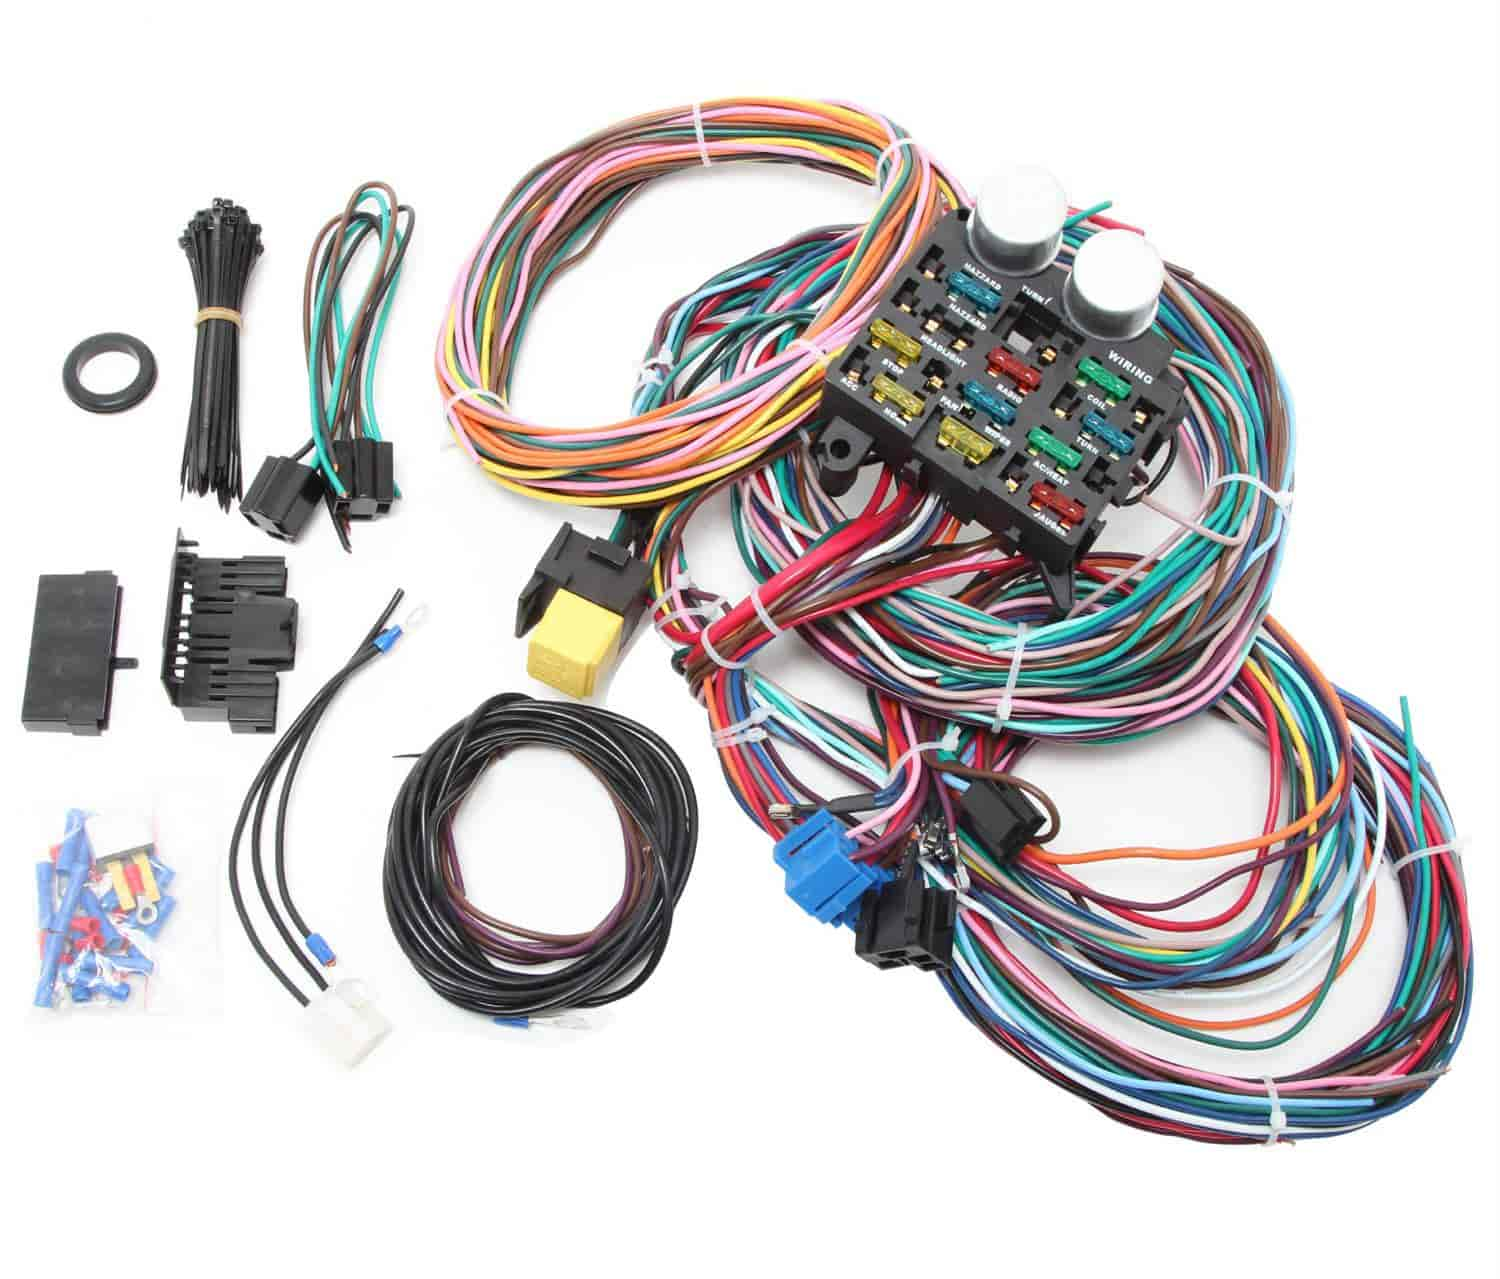 707 r1002x rpc r1002x universal 12 circuit wire harness kit jegs jegs universal wiring harness at fashall.co